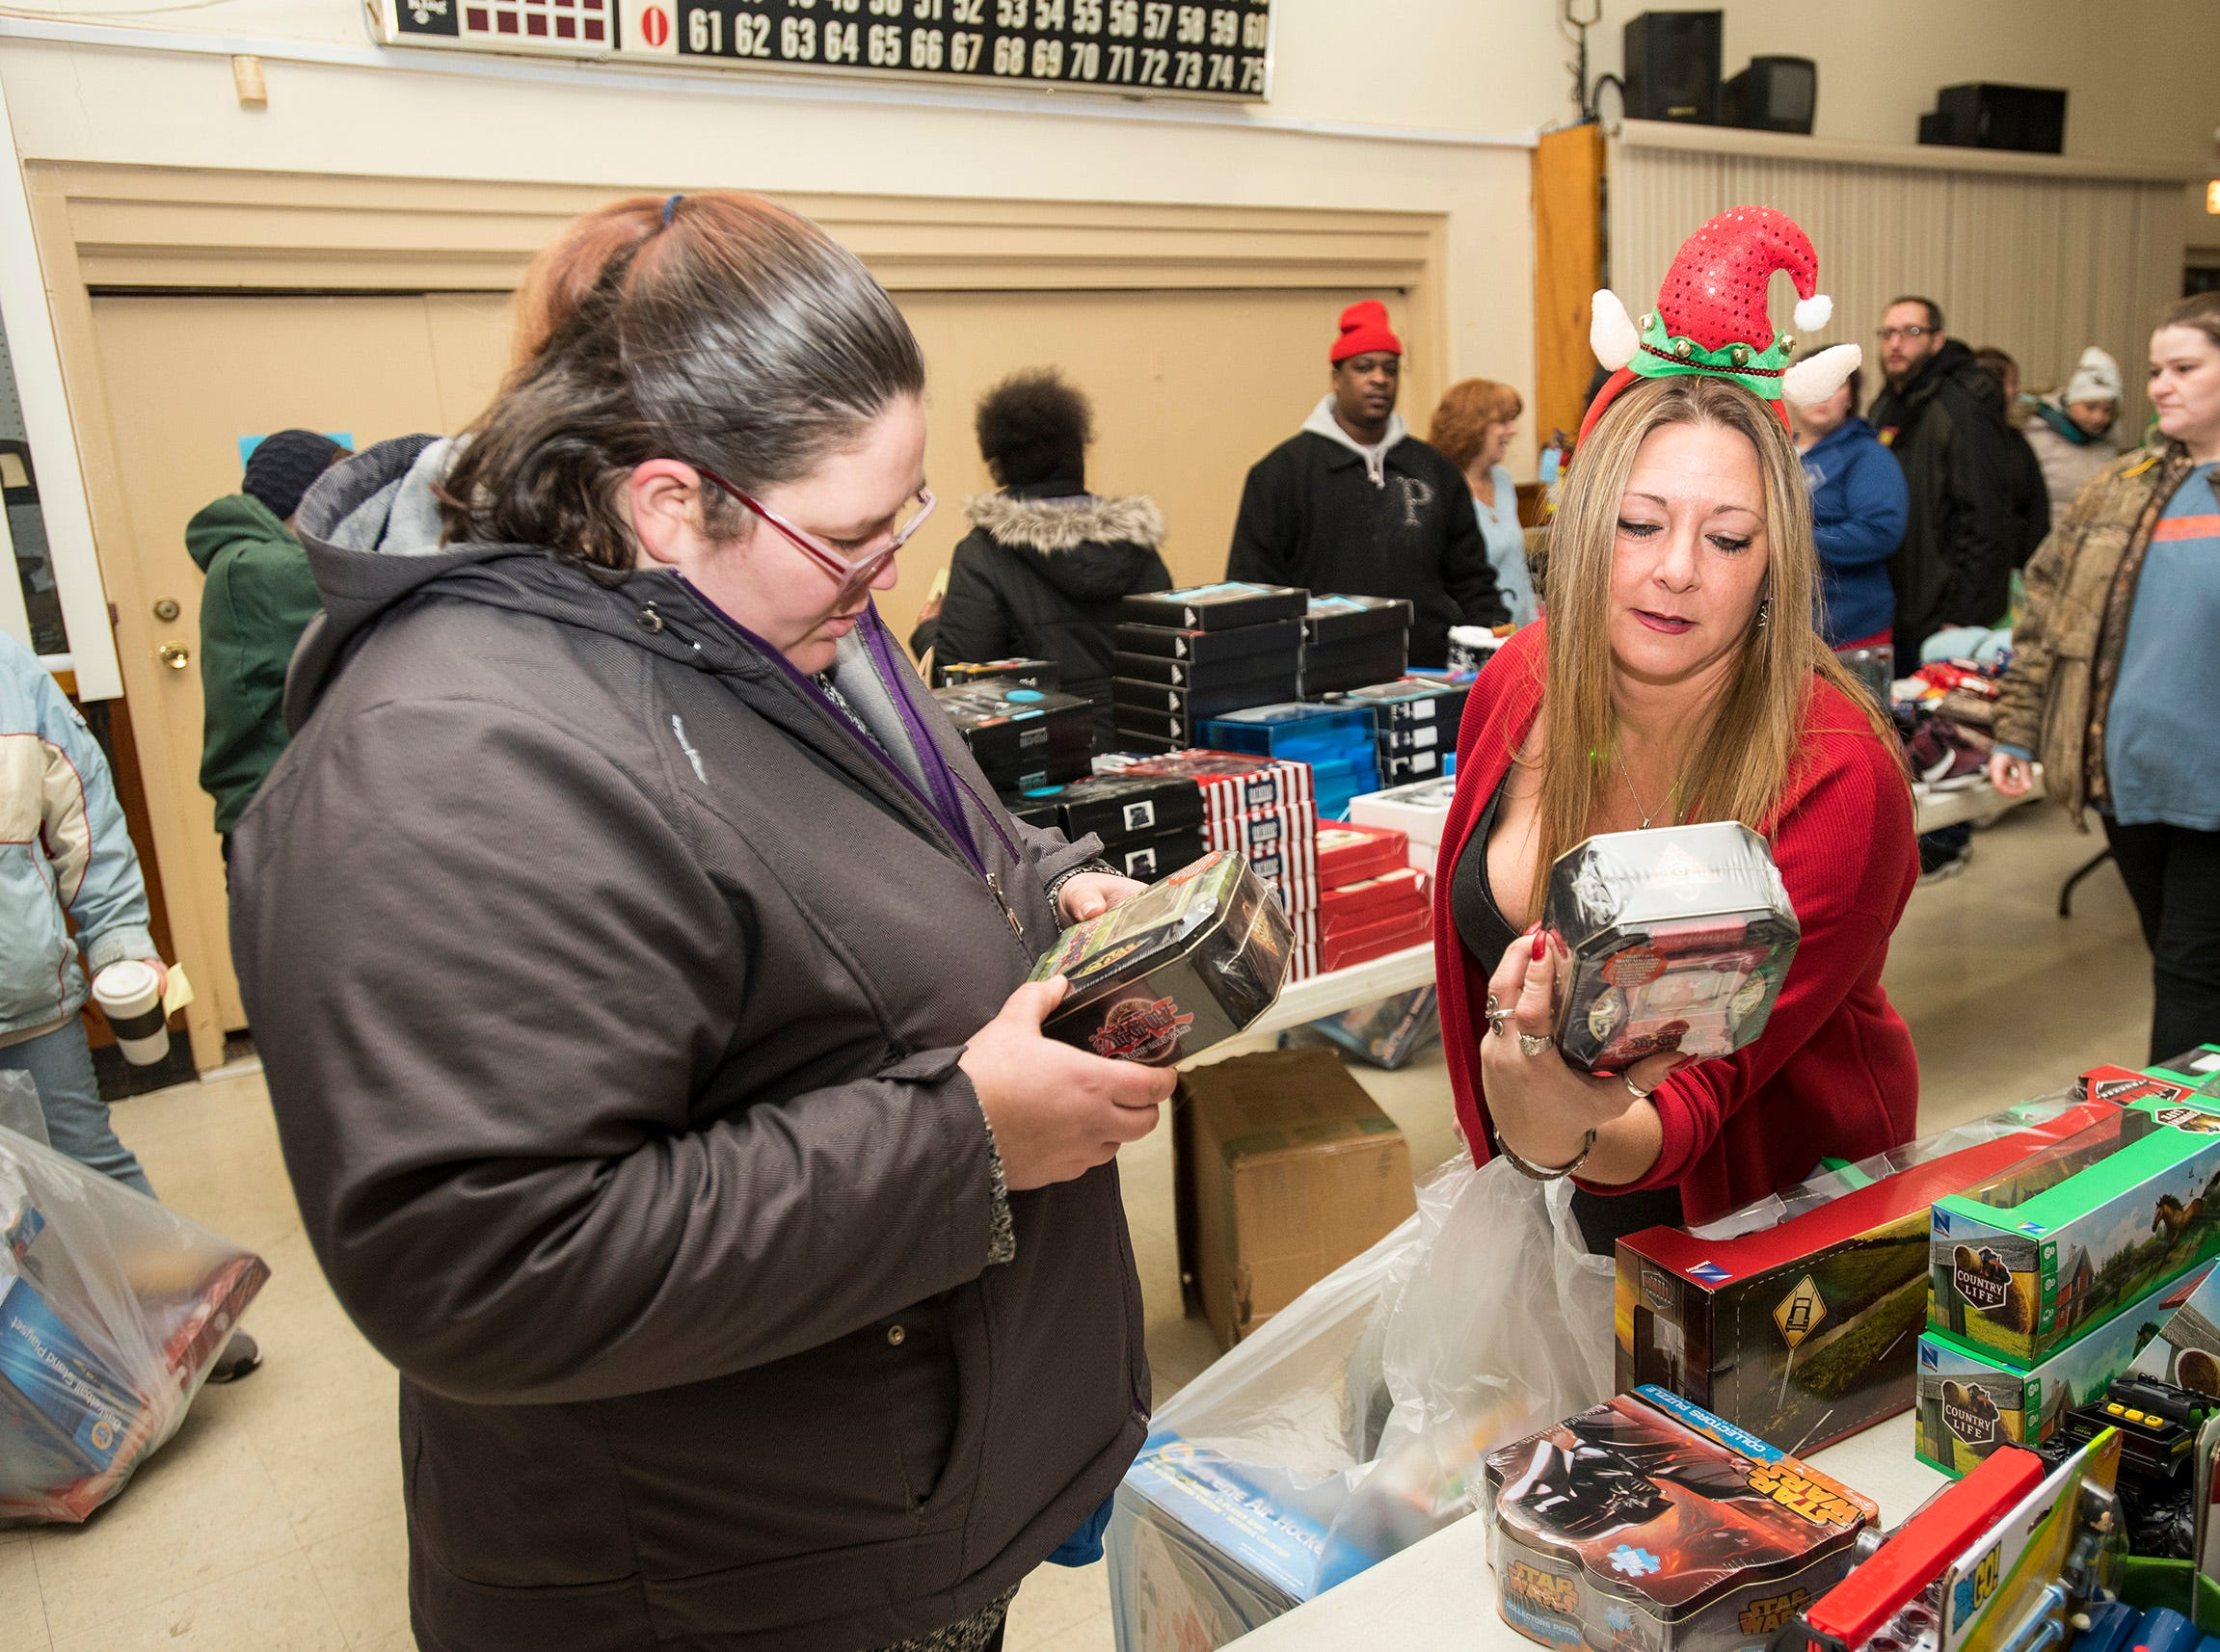 Toys For Kids Boardmember Jen Ousley, right, helps Analisa Jex find toys for her kids Wednesday, Dec. 12, 2018 during the annual toy giveaway at the Charles Hammond American Legion Post in Port Huron.